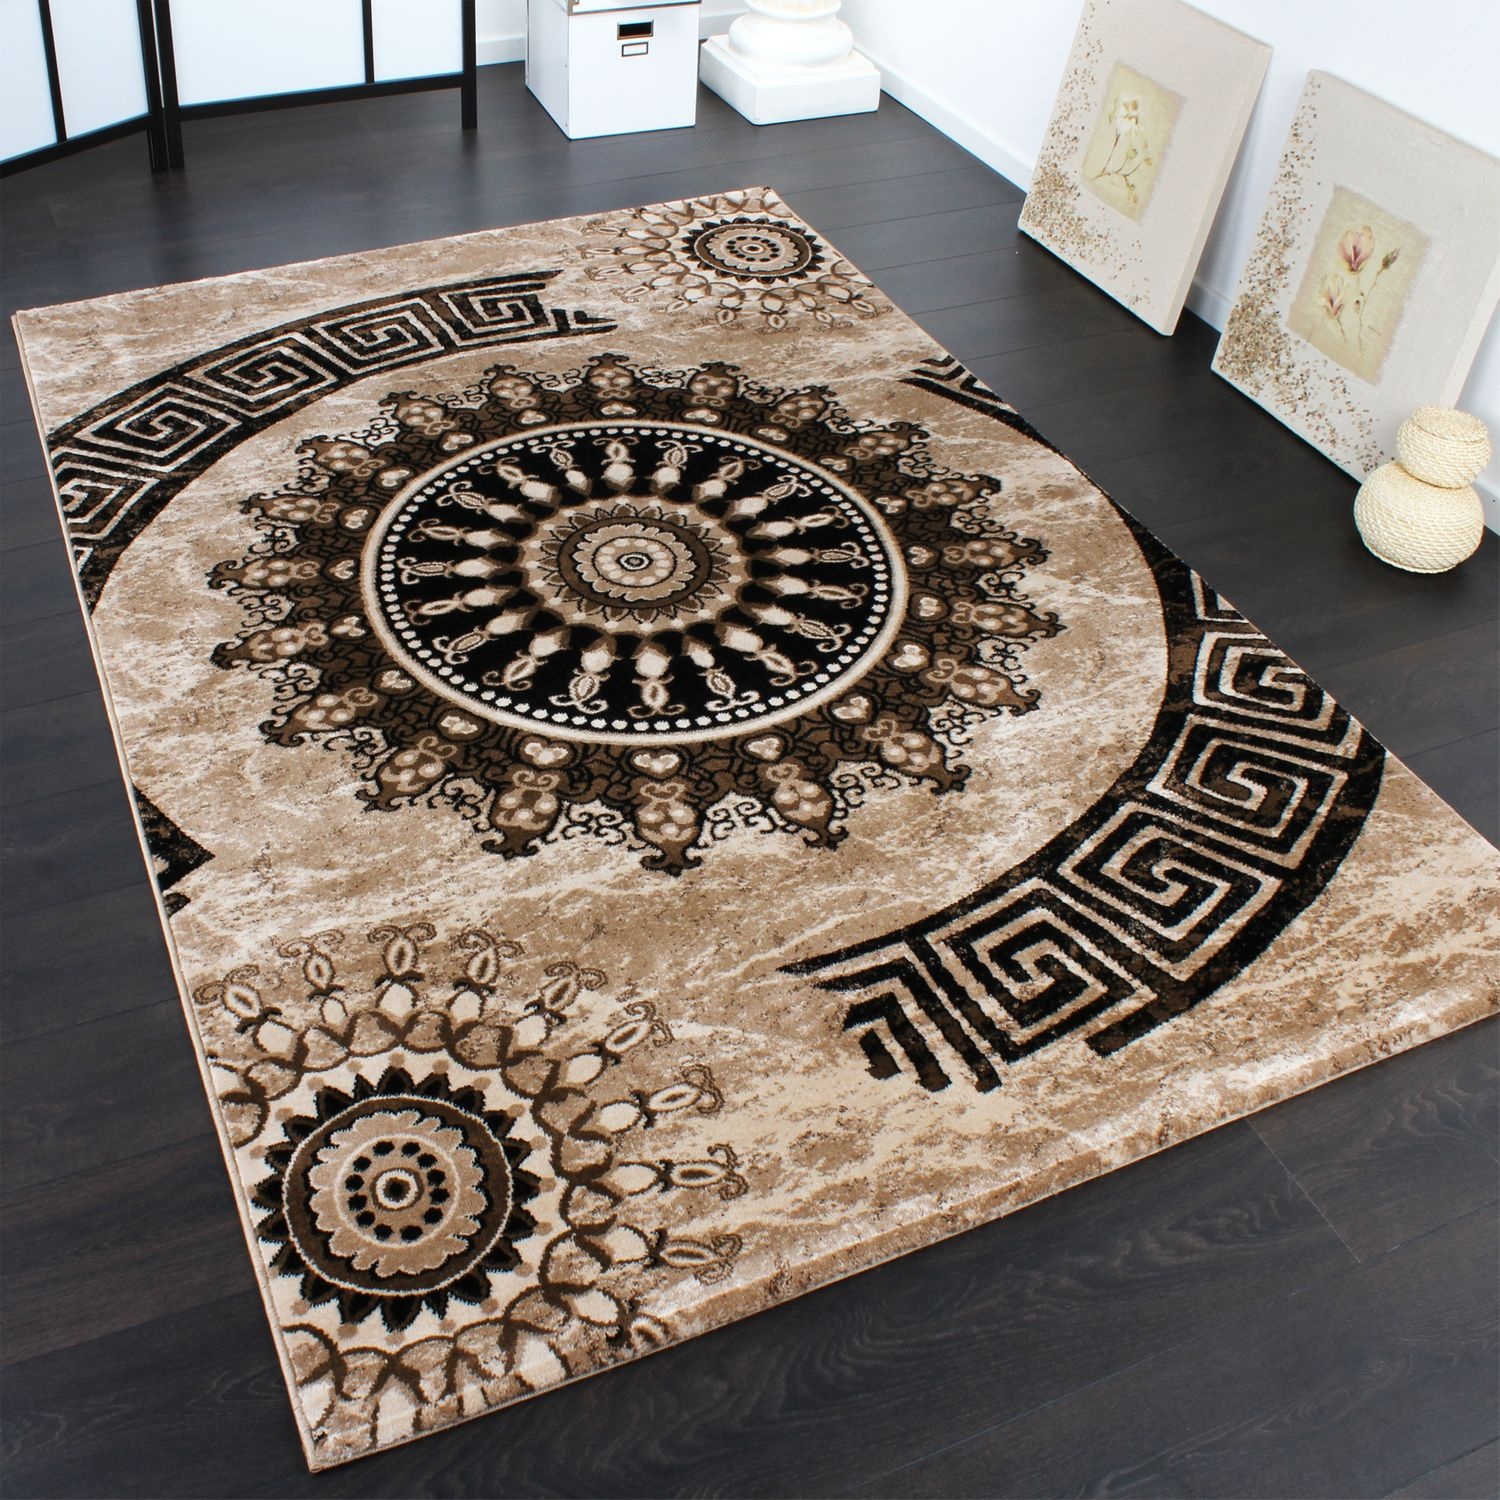 Carpet With Classic Pattern Circle Ornaments In A Mixture Of Brown and Beige